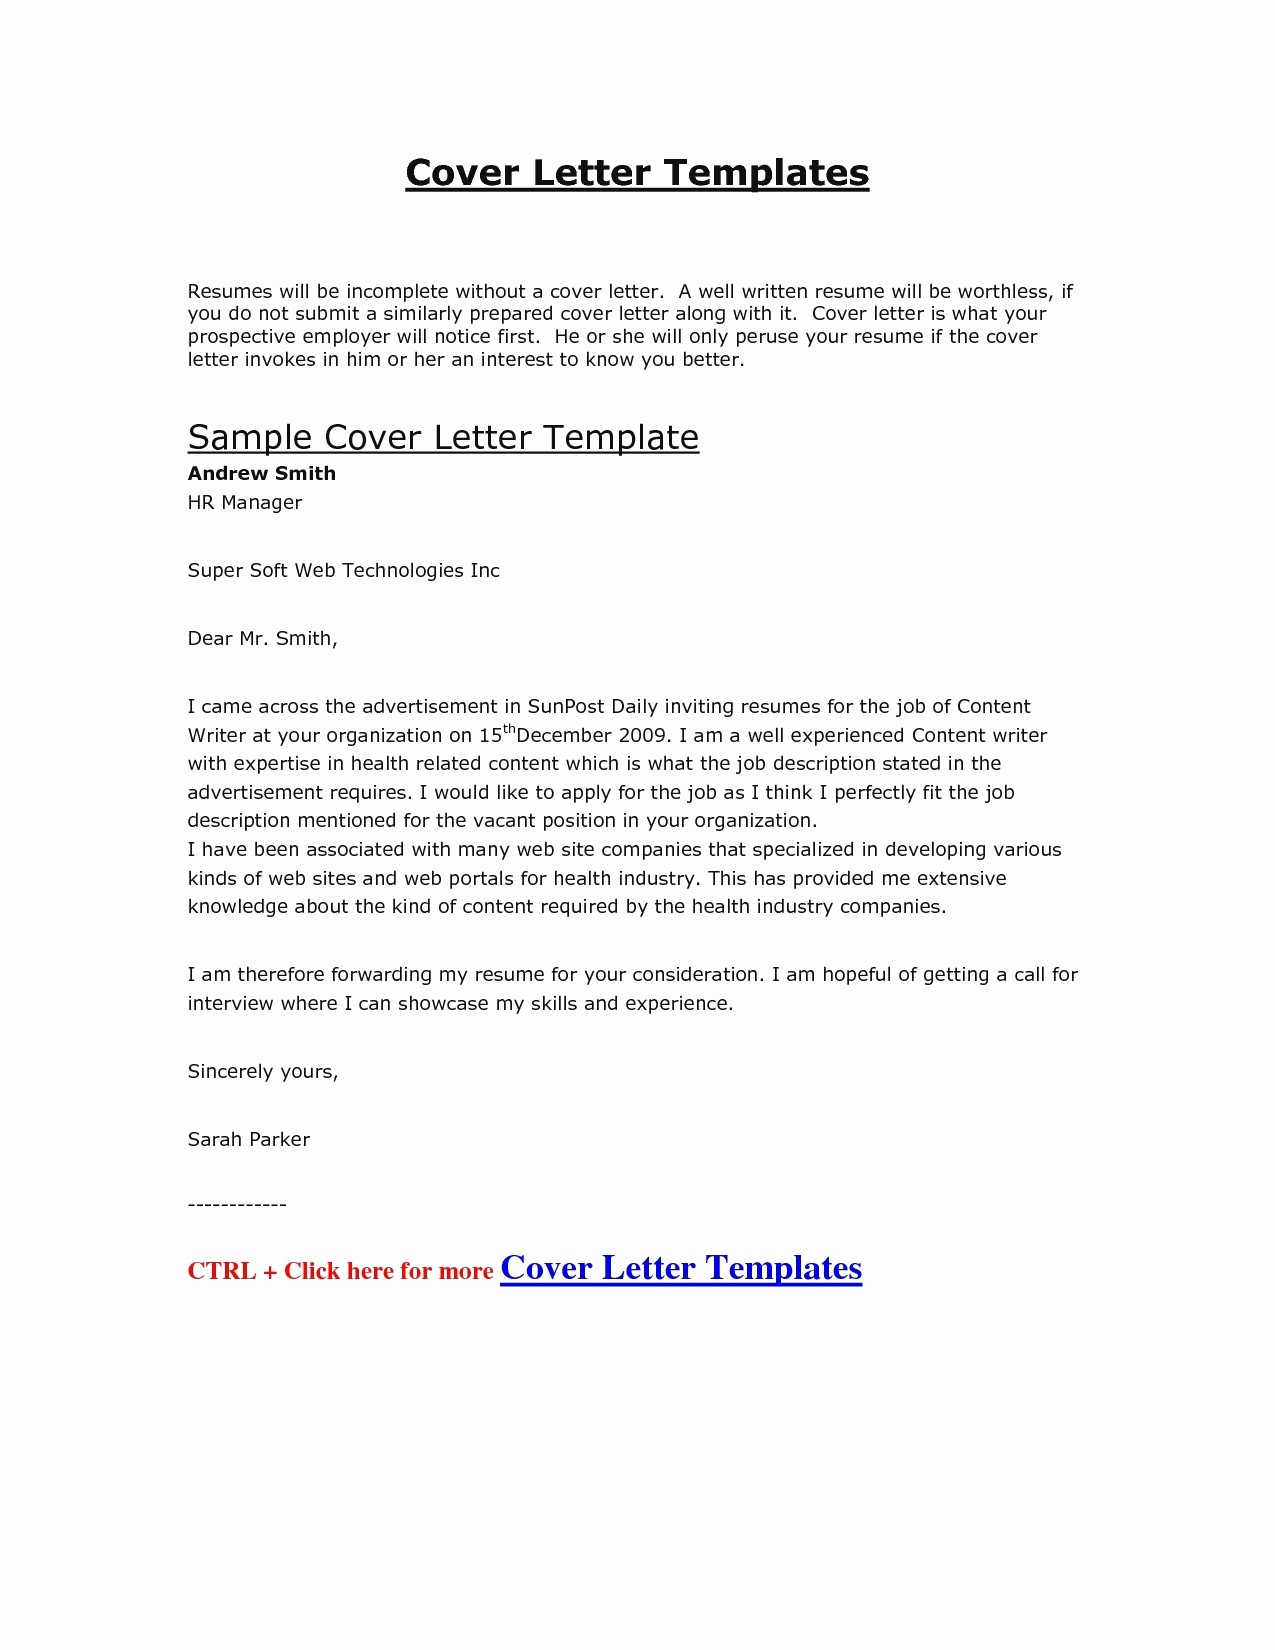 Cover Page for Resume Template Luxury Resume Cover Letter Template 2017